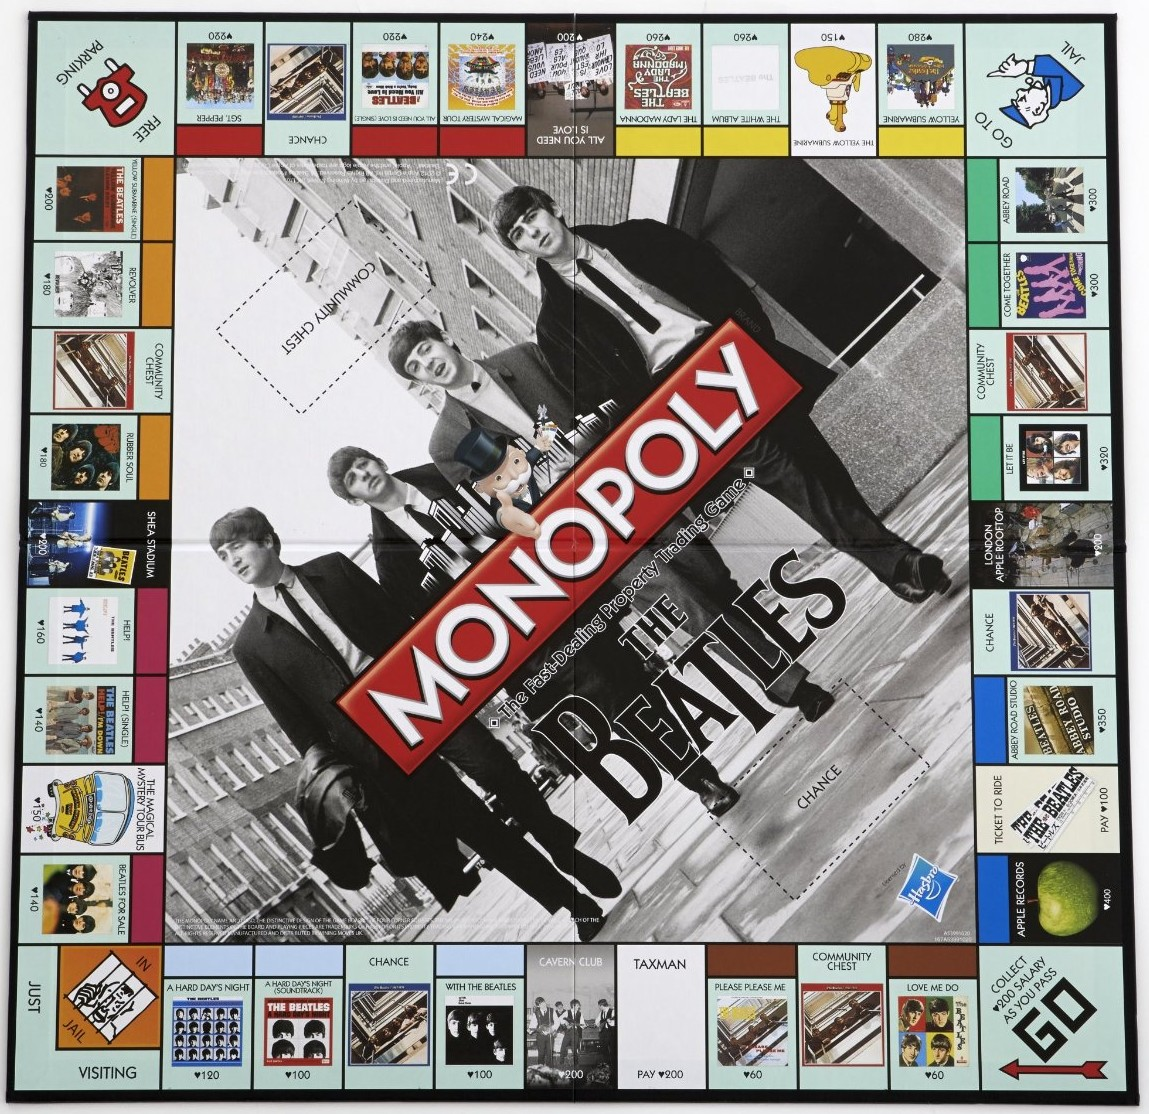 Plateau du Monopoly The Beatles (version 3)